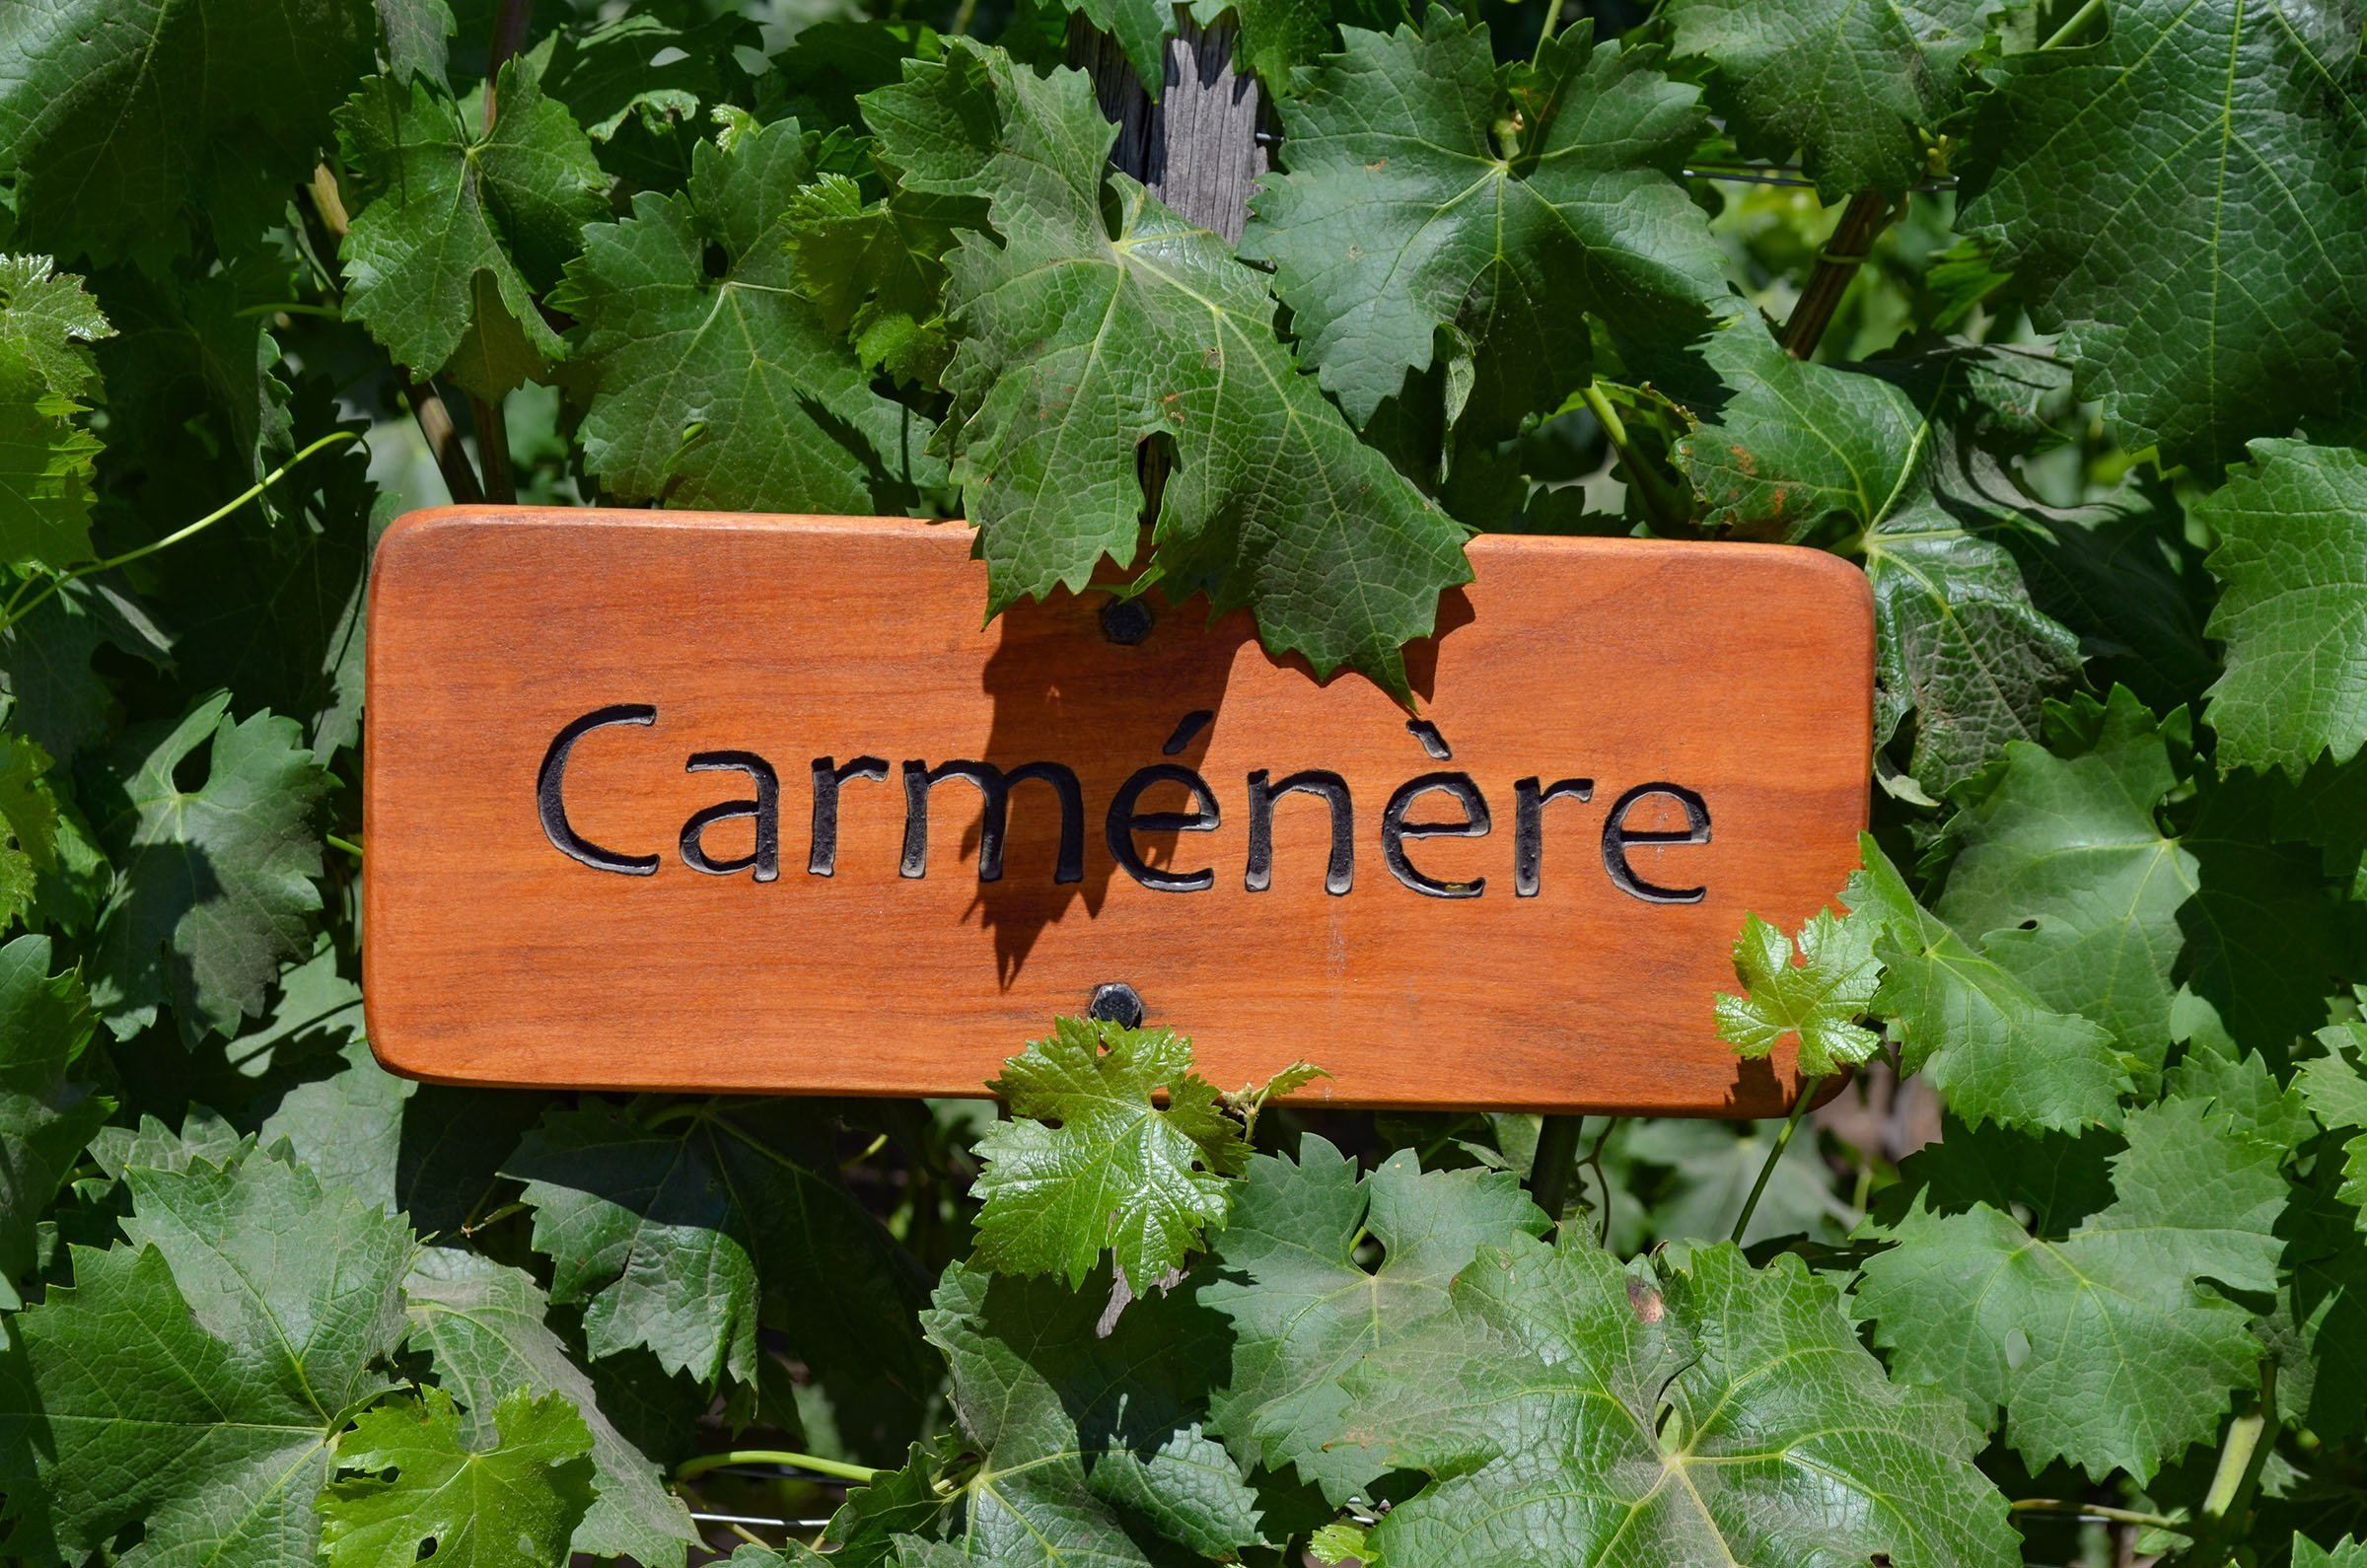 Dec 20, 2015 - Santiago, Chile: Grape varietal Carmenere growing in the Concha y Toro vineyards